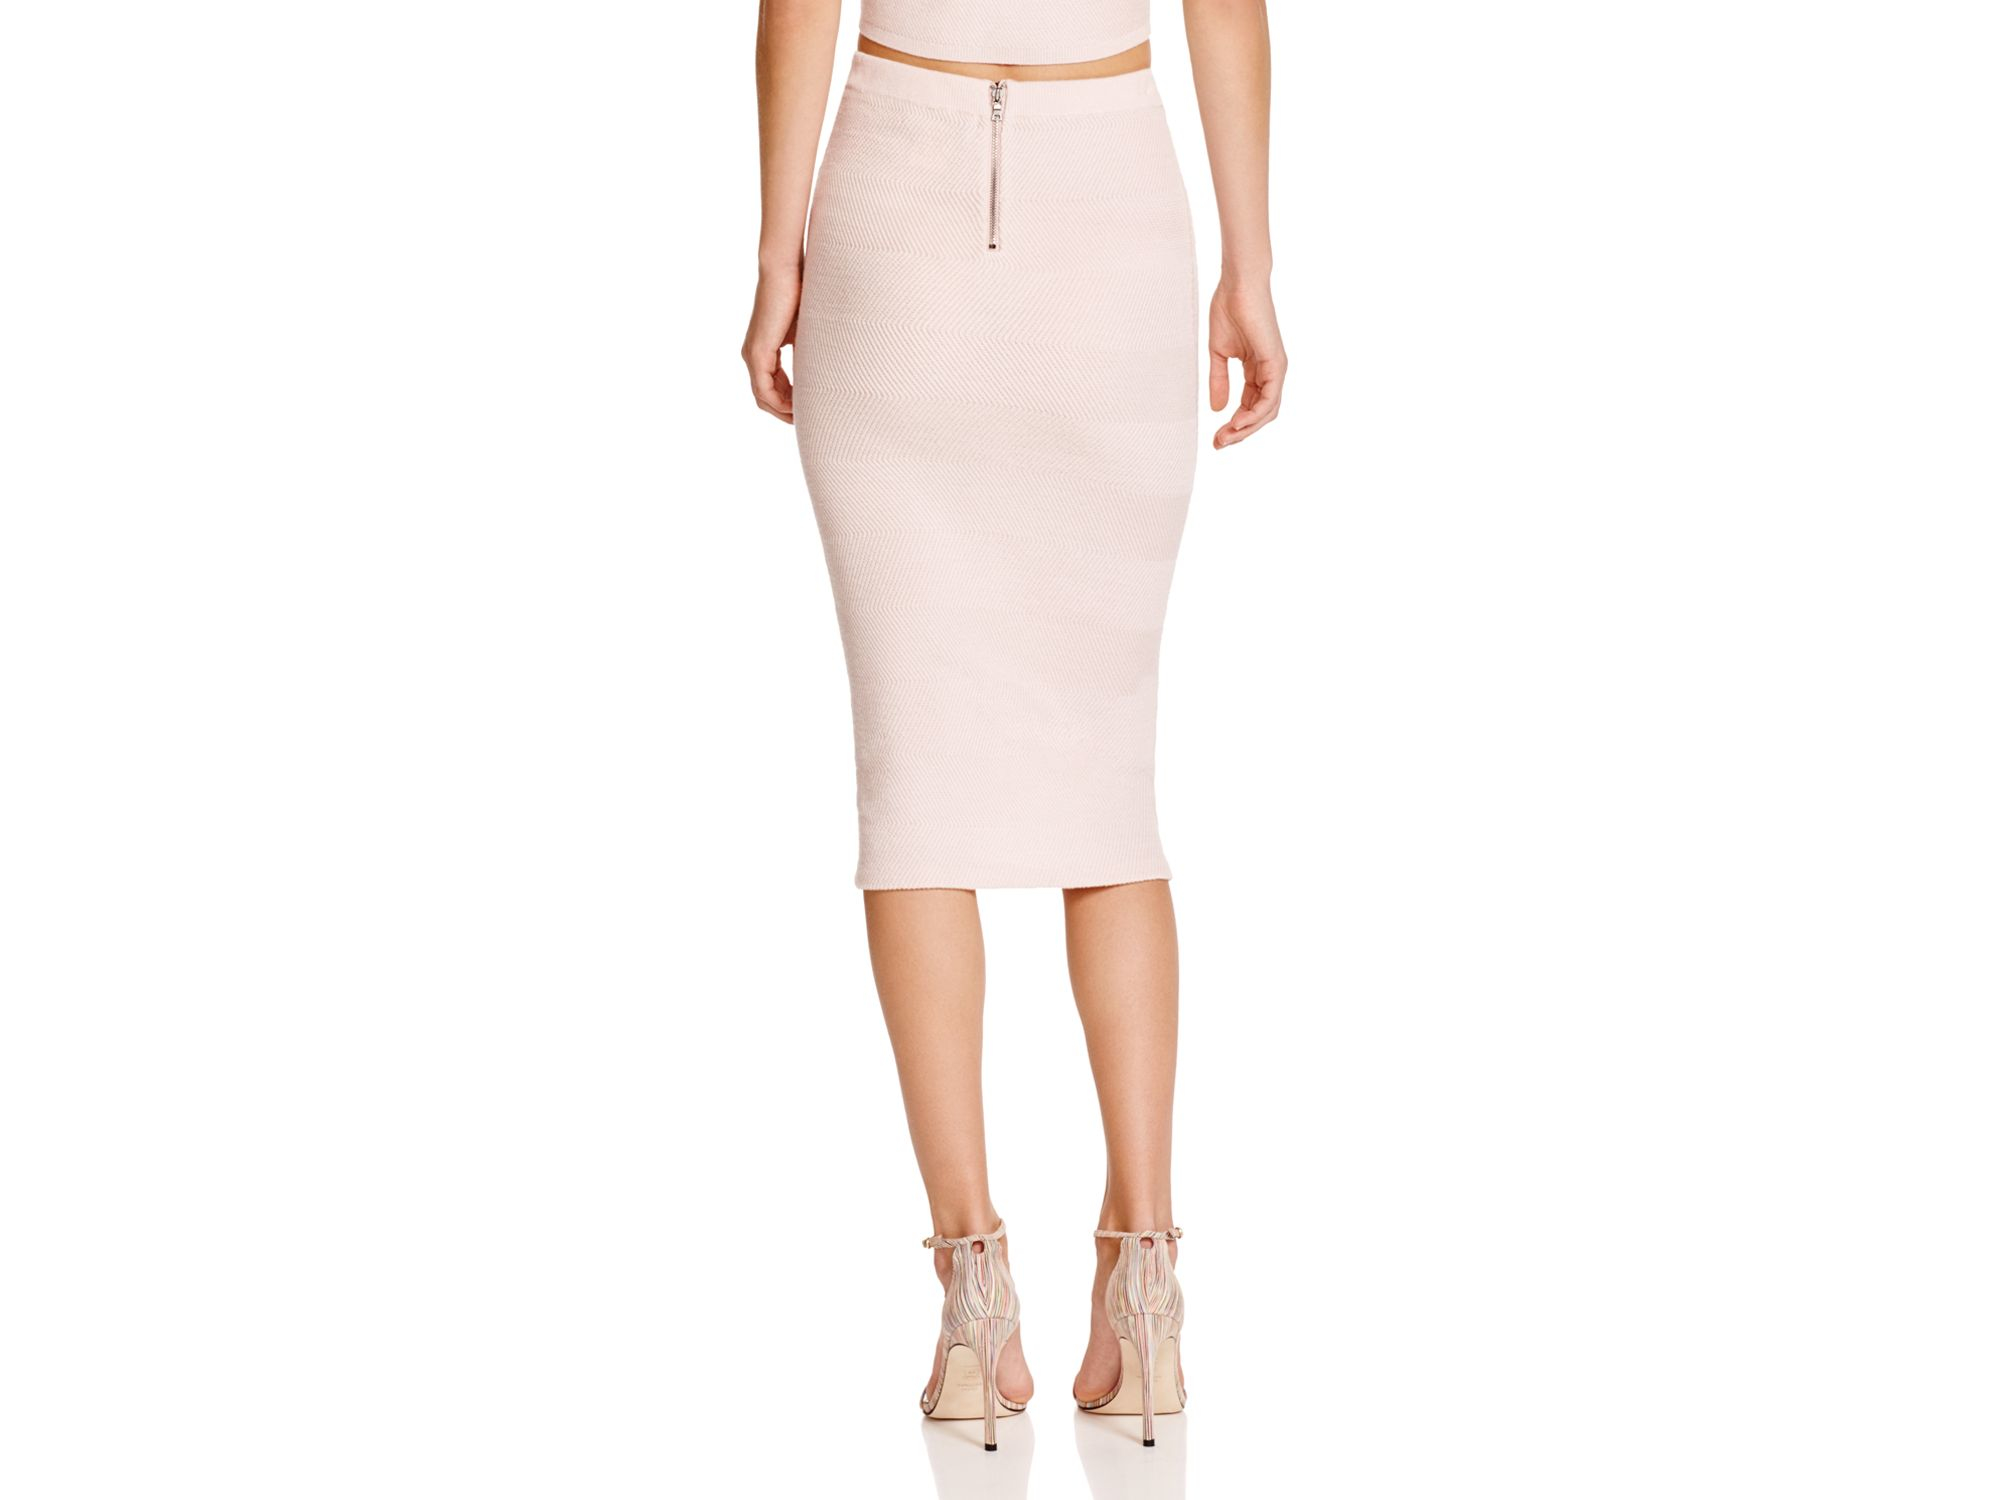 Choice Cheap Price Footaction For Sale Alice + Olivia Knit Knee-Length Skirt Looking For Sale Online wHLouTex1m